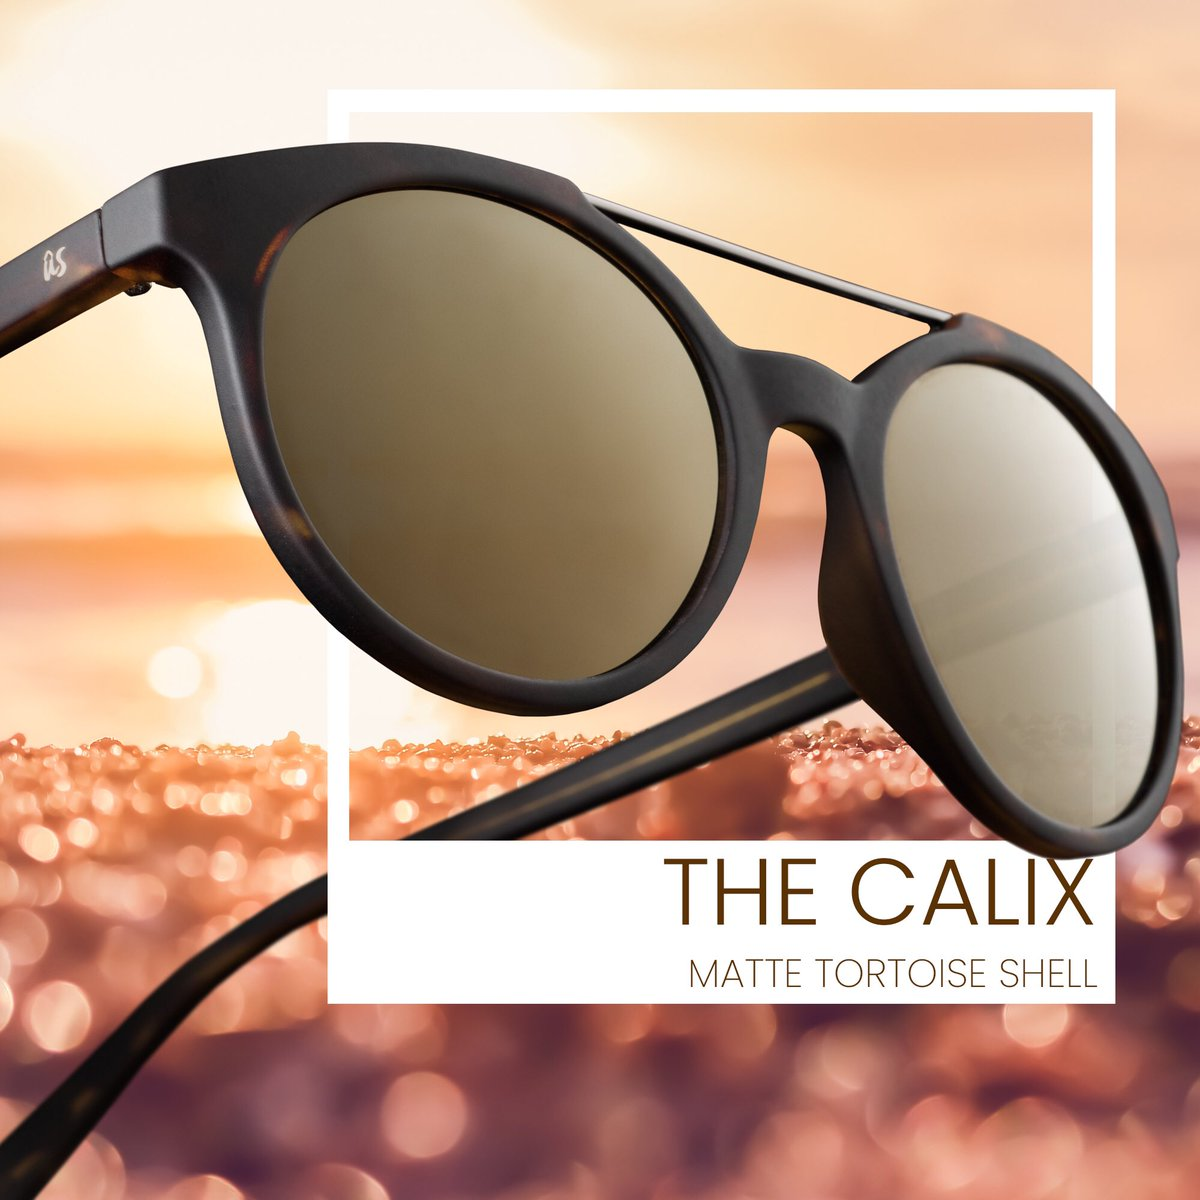 With its slim, lightweight metal brow and classy vintage curves, The Calix are pure, smoking hot sexiness! And all made from eco-friendly biomaterial... https://t.co/9CotSaTcUW • • • #eyewear #sunglasses #ecofriendly #style #fashion https://t.co/BTmLtxUqxT